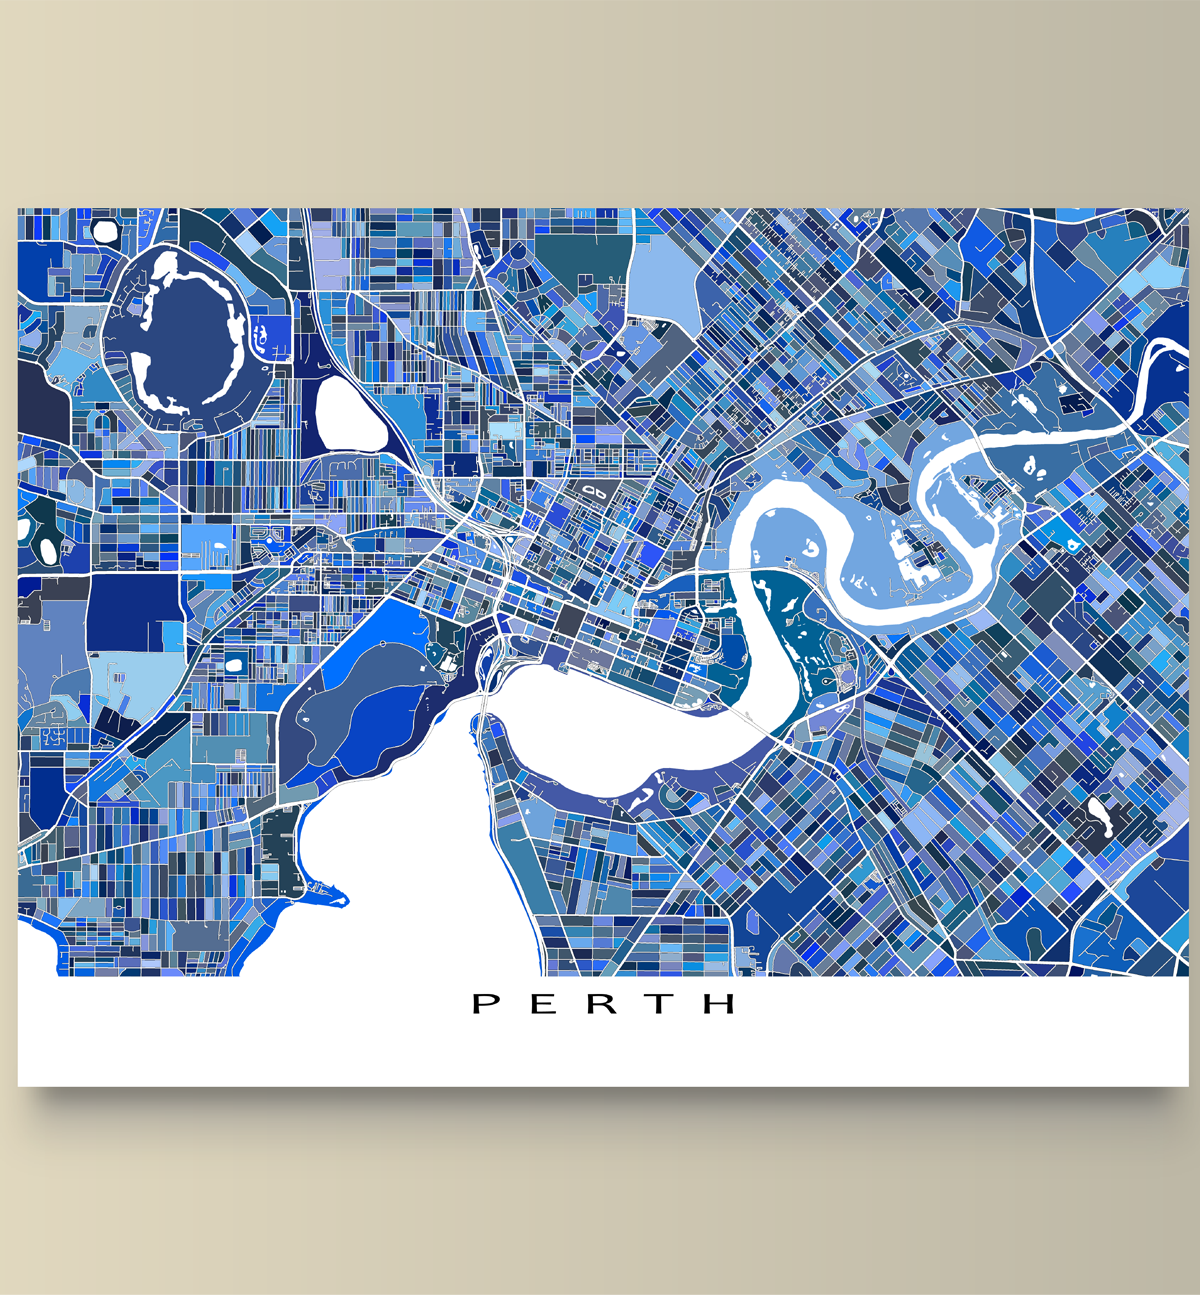 Perth map art print featuring the city